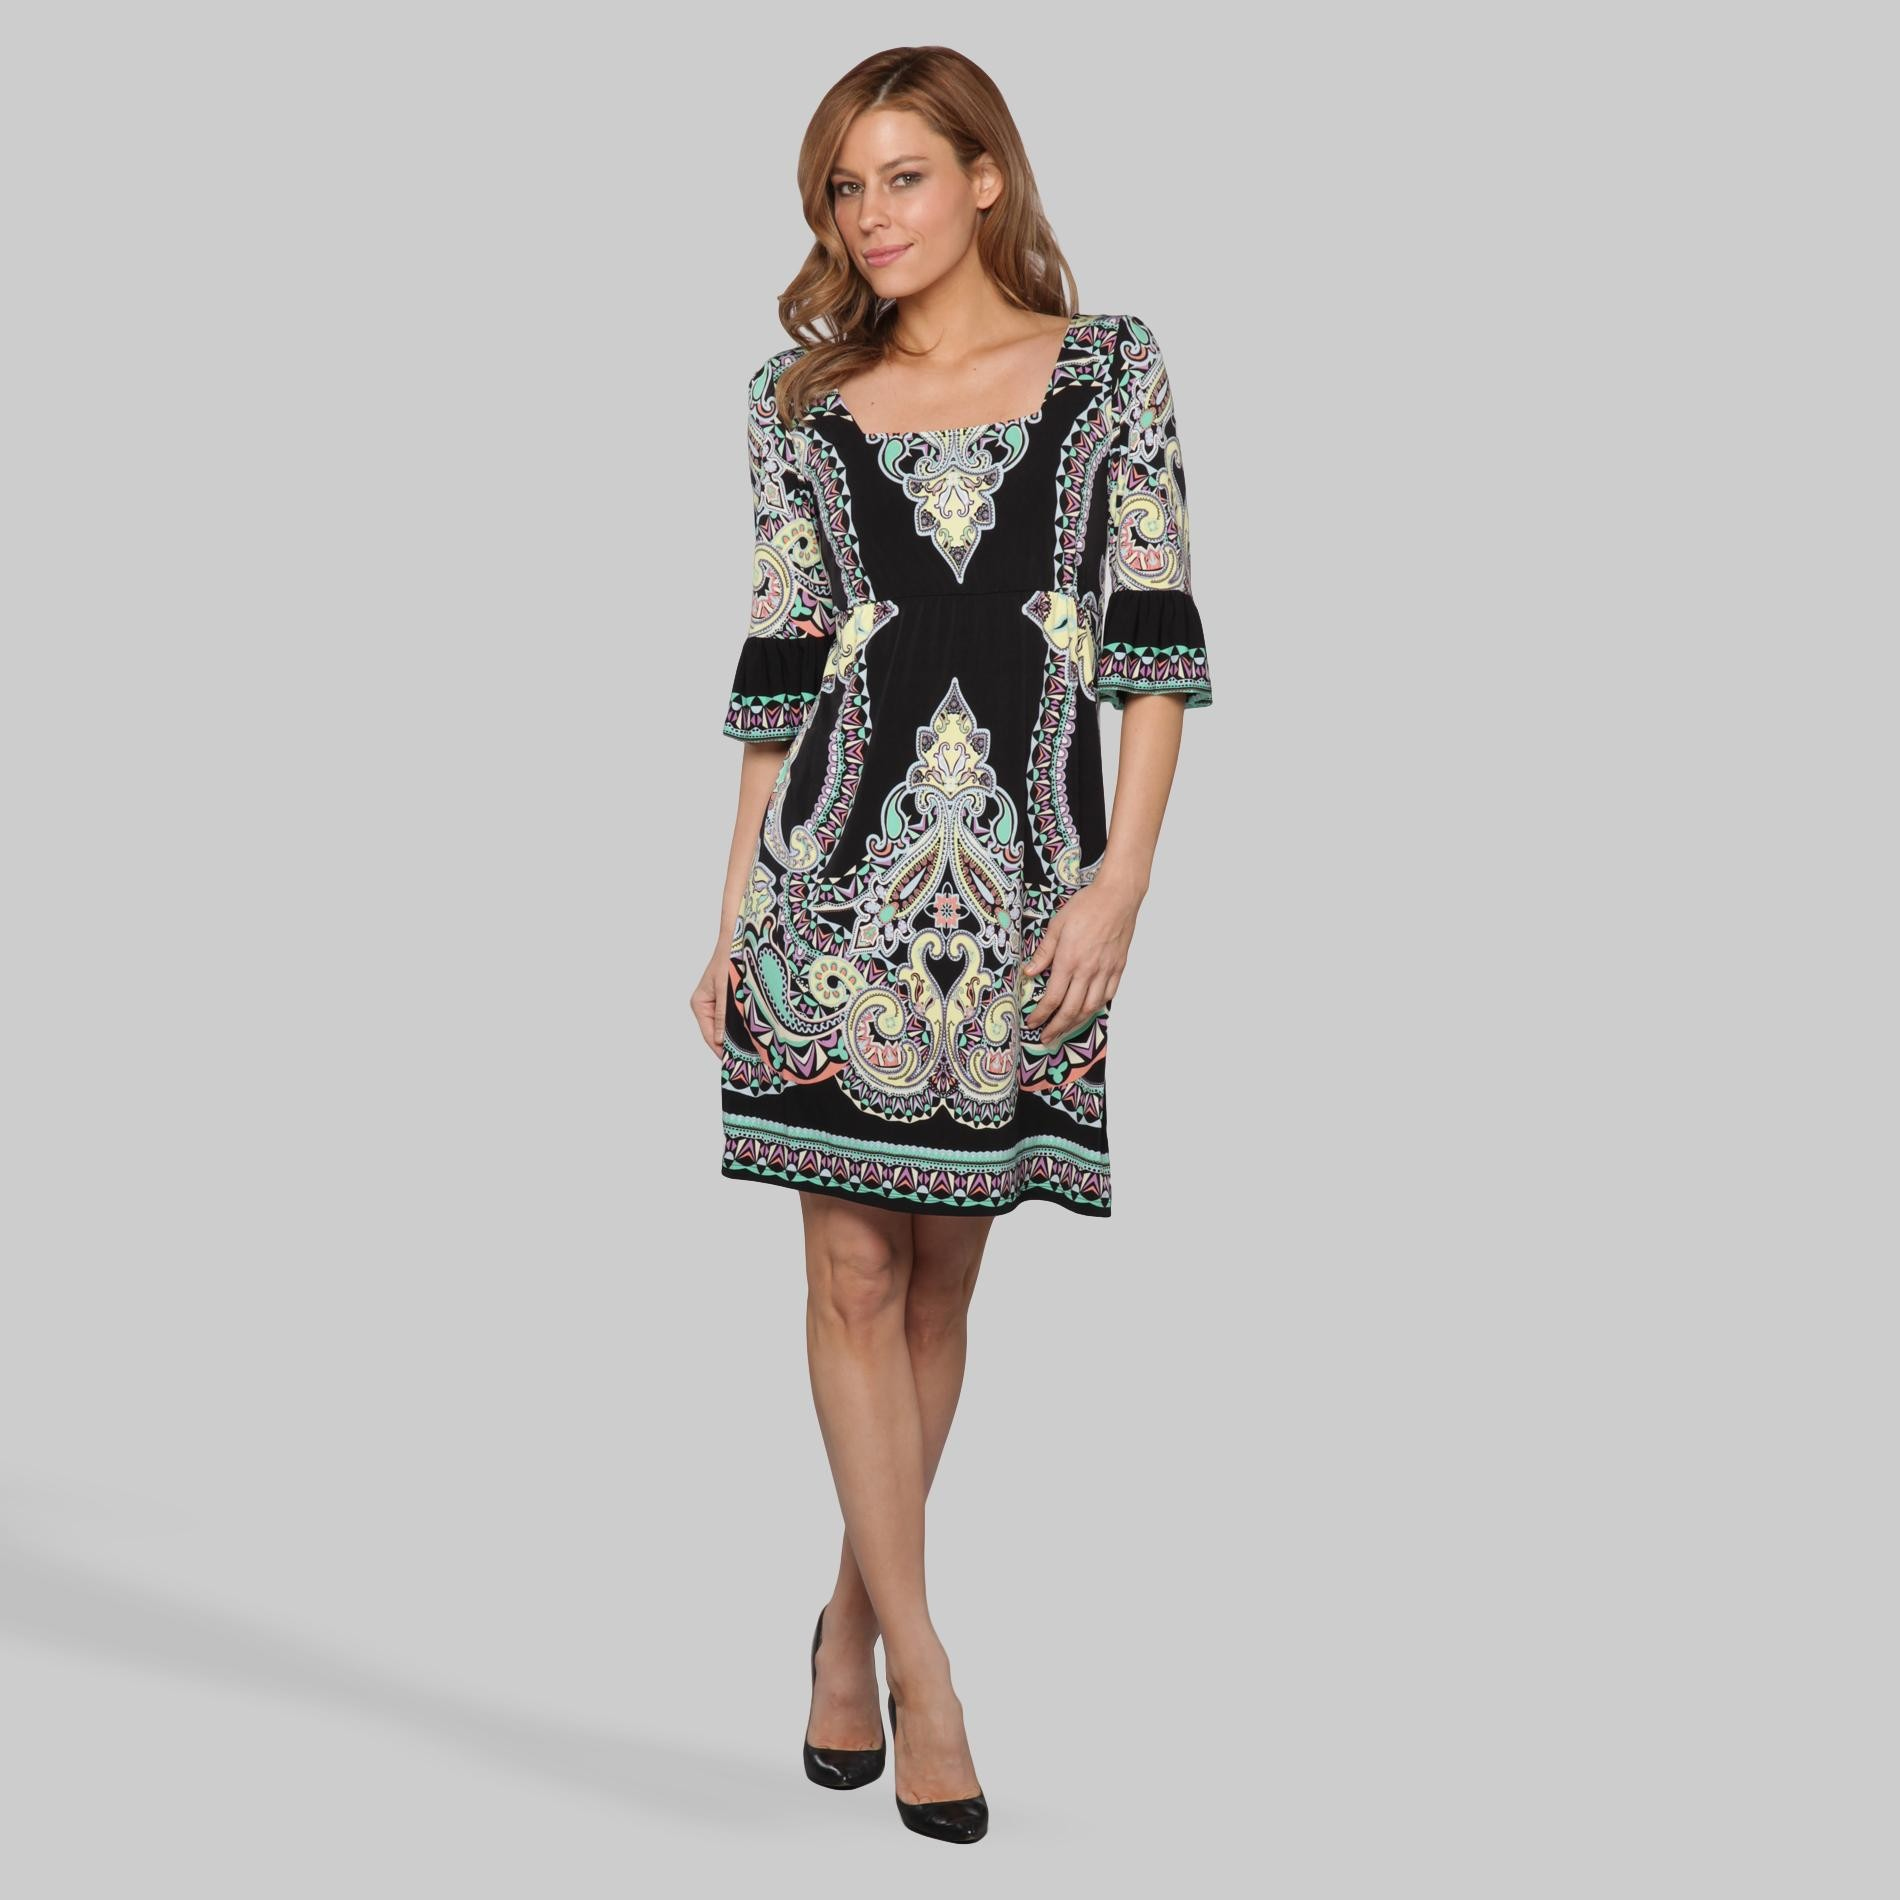 Women's A-Line Dress - Scarf Print at Sears.com